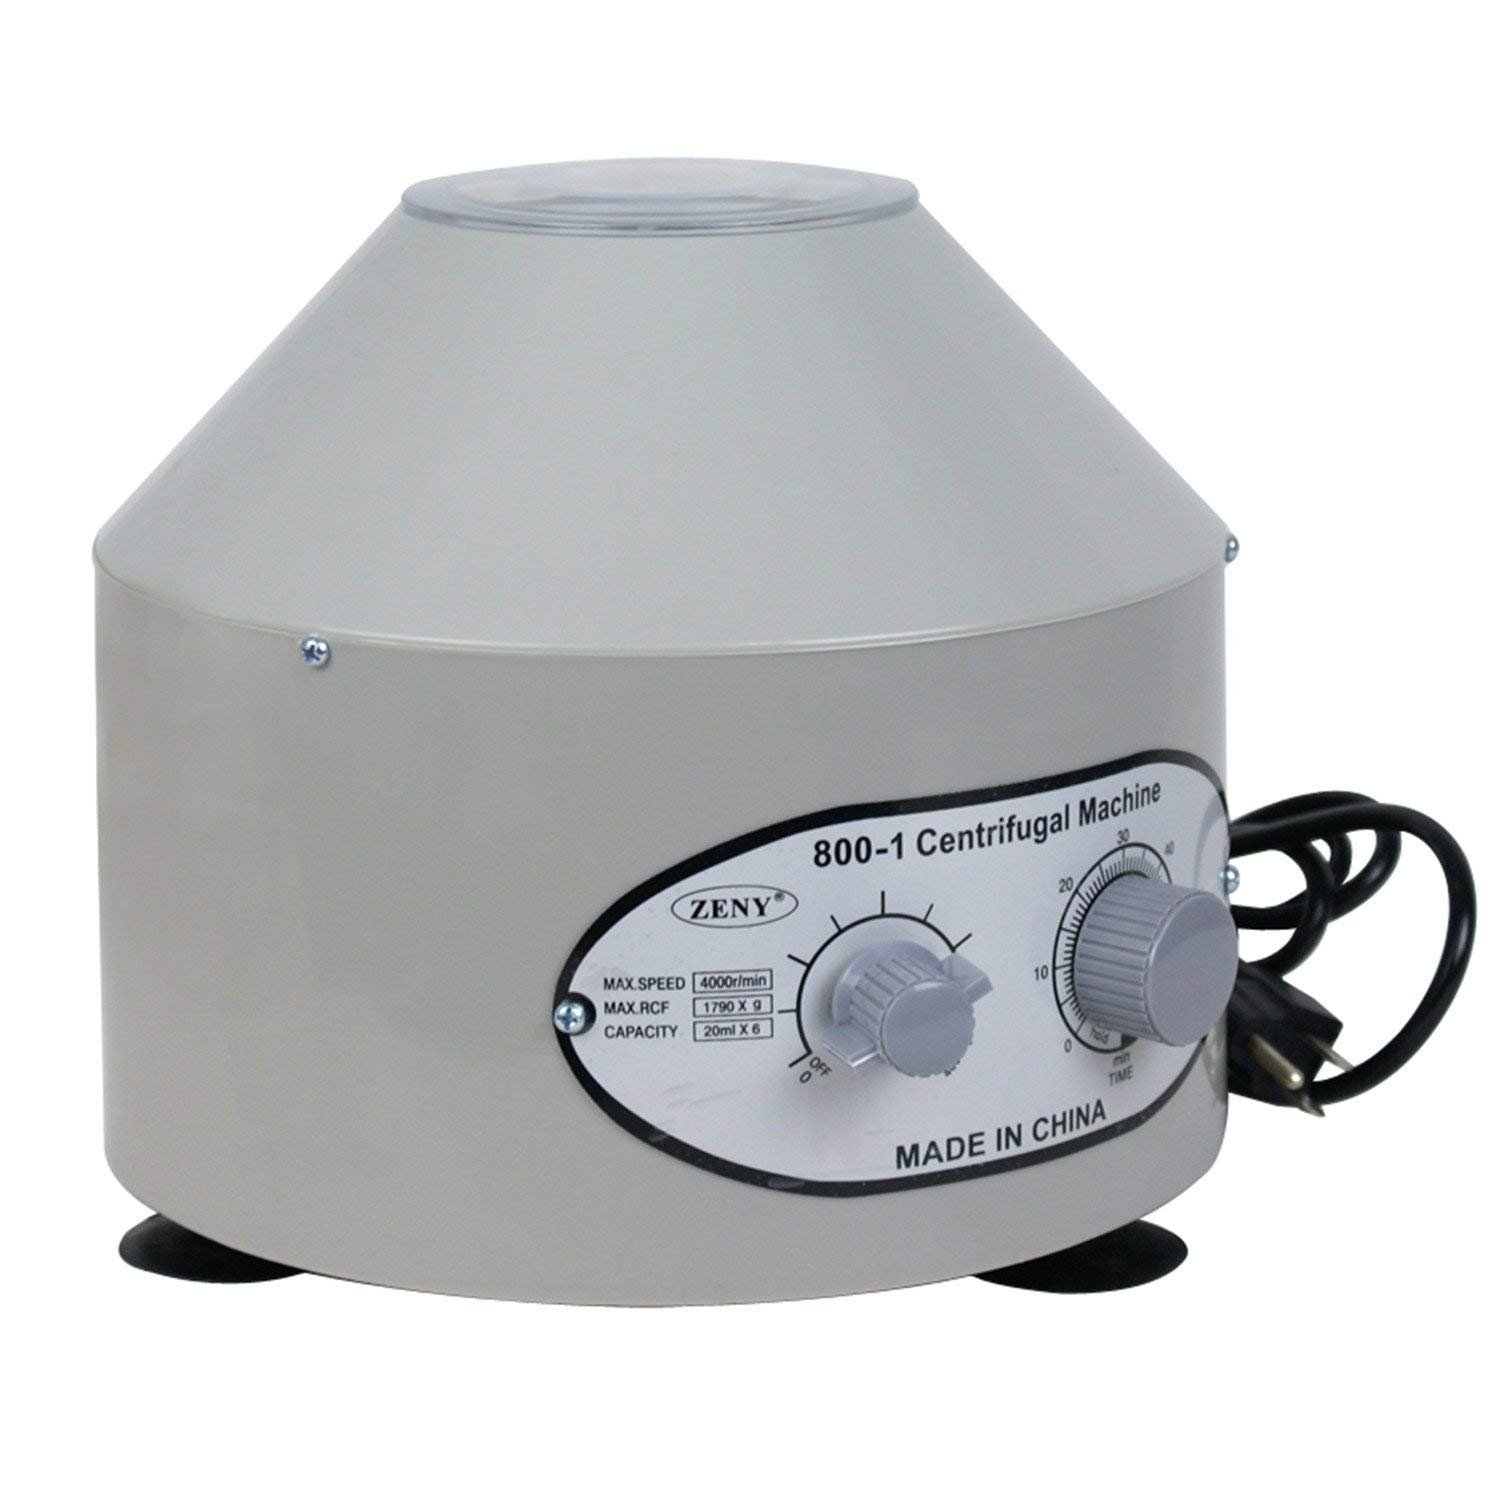 ZENSTYLE Pro Desktop Electric Centrifuge Machine 800-1 110v 4000rpm 6x20ml Low Speed Lab Medical Practice w/Time Speed Control